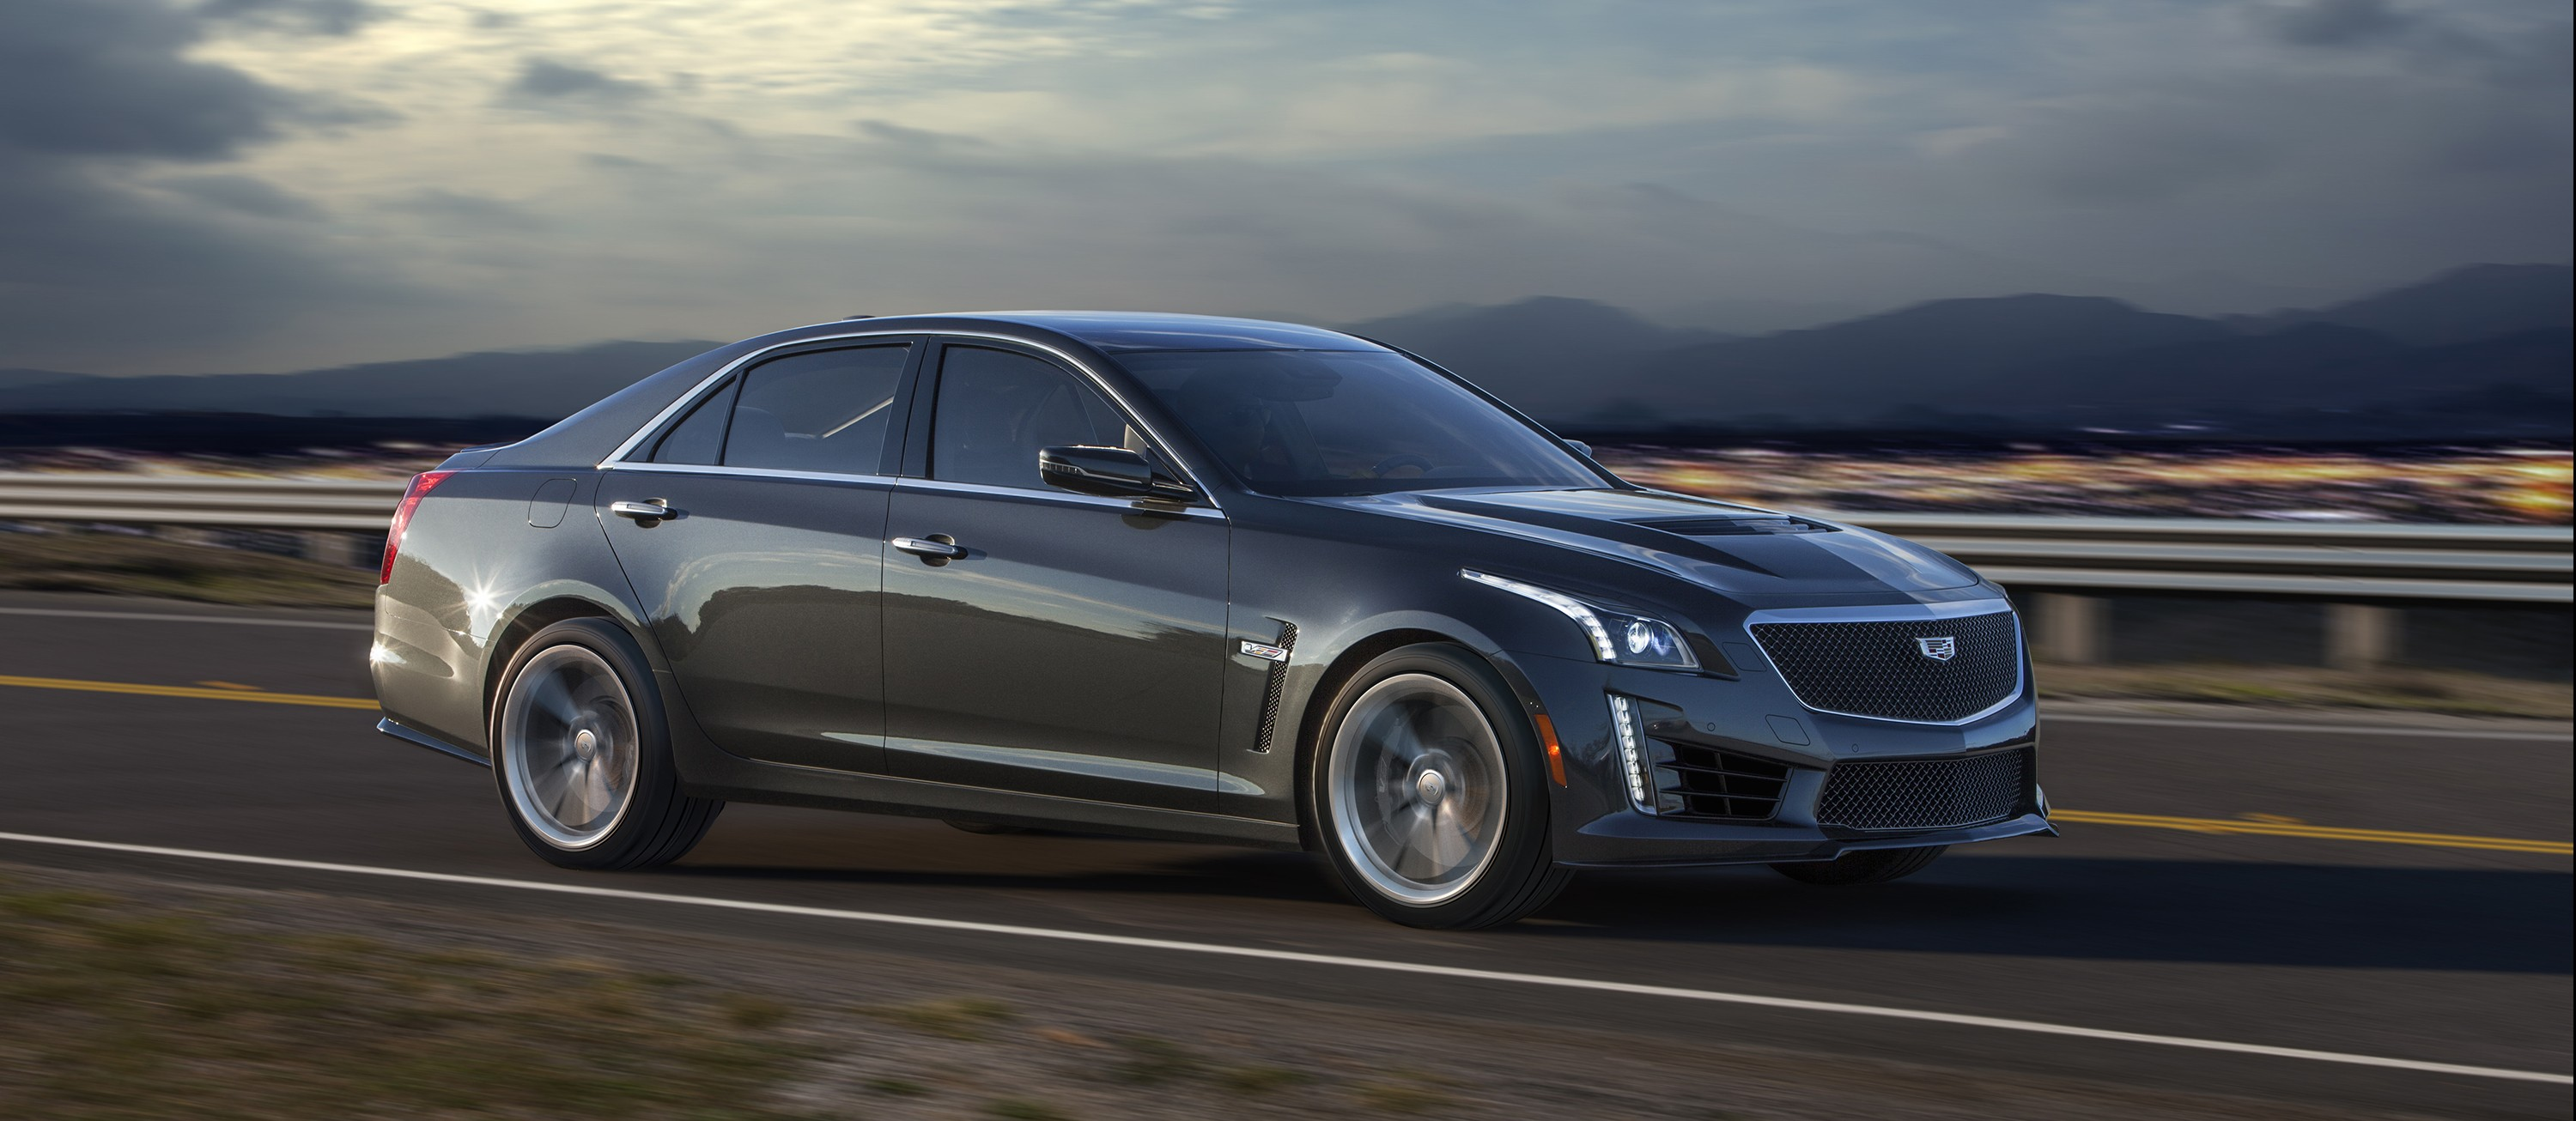 z interior exterior car and cts show awd youtube rich sedan cadillac watch